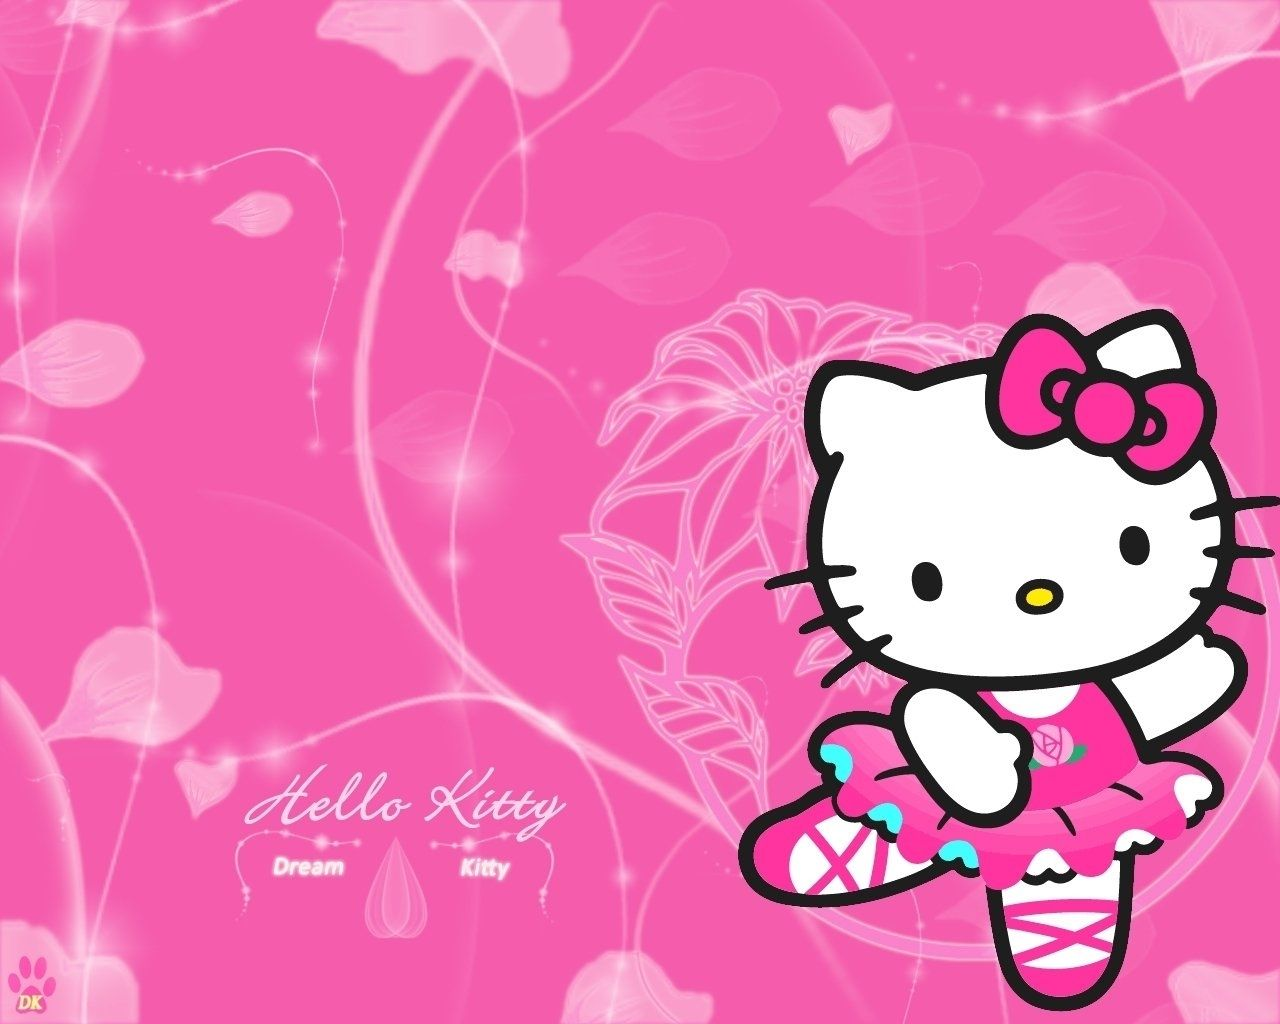 10 Top Pink Hello Kitty Wallpapers Full Hd 1920 1080 For Pc Desktop Hello Kitty Wallpaper Hd Hello Kitty Images Hello Kitty Wallpaper